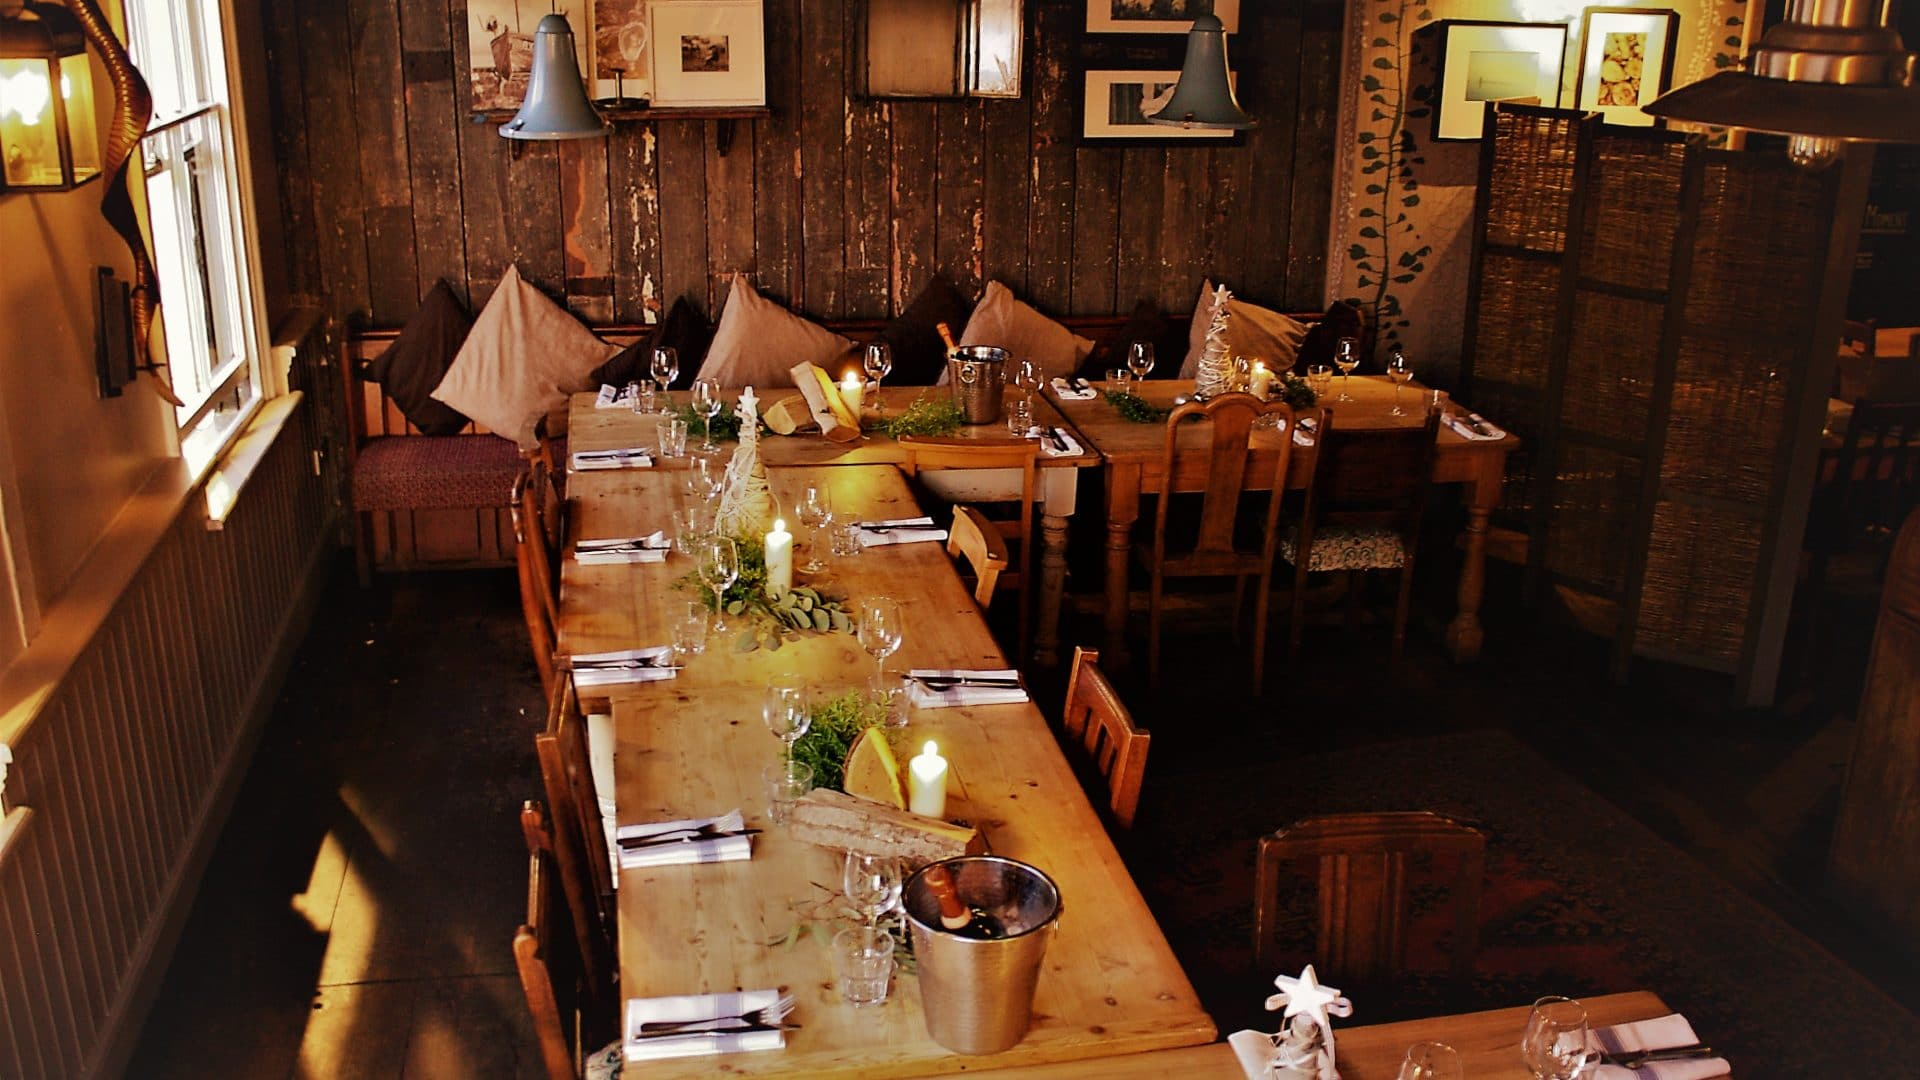 Make your Christmas party your own at Pearson's Arms Whitstable